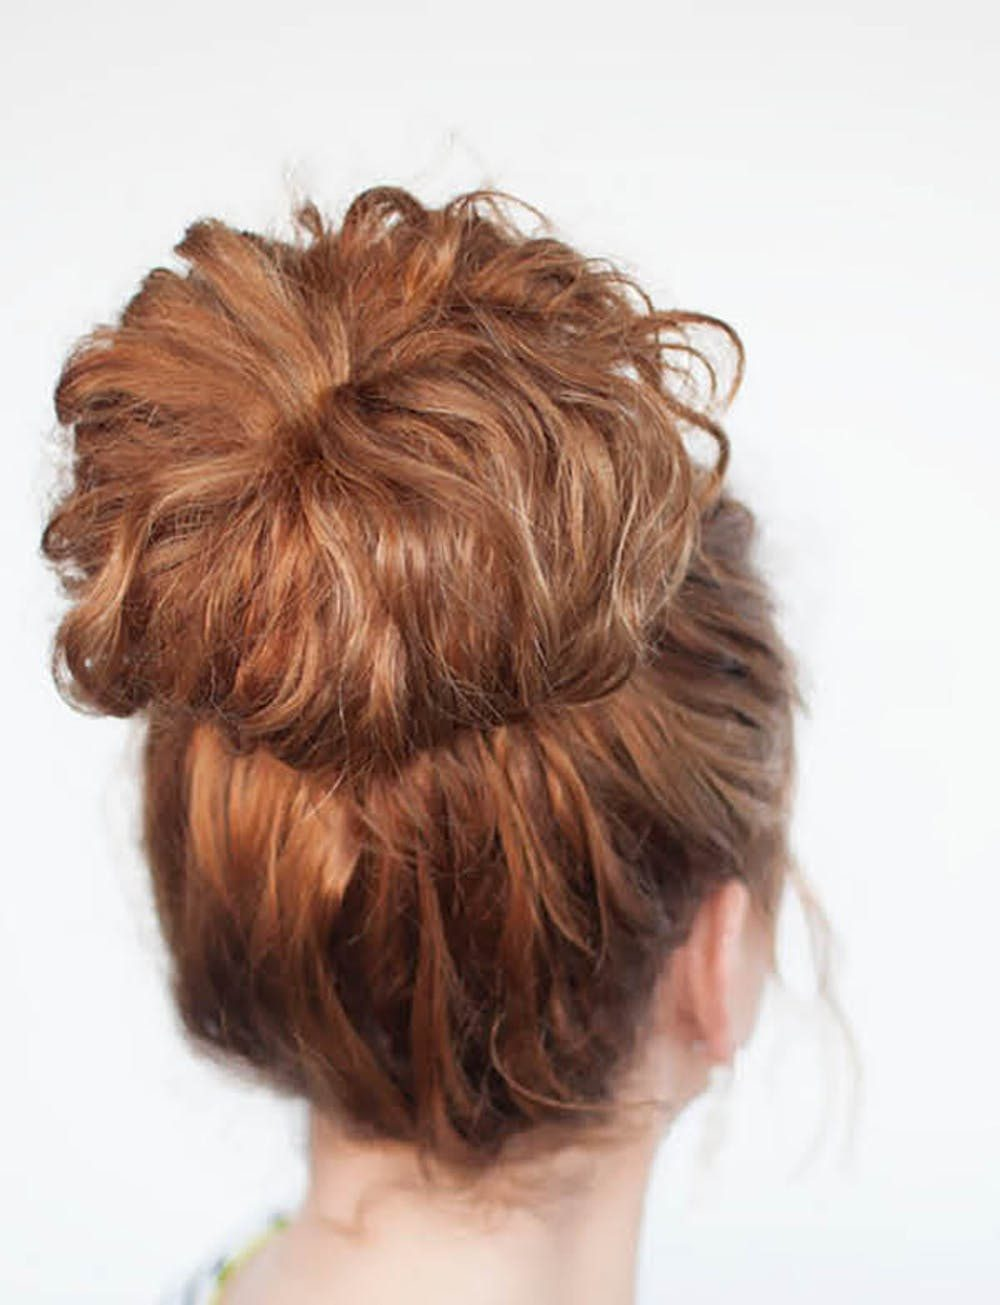 The Neat Curly Updo